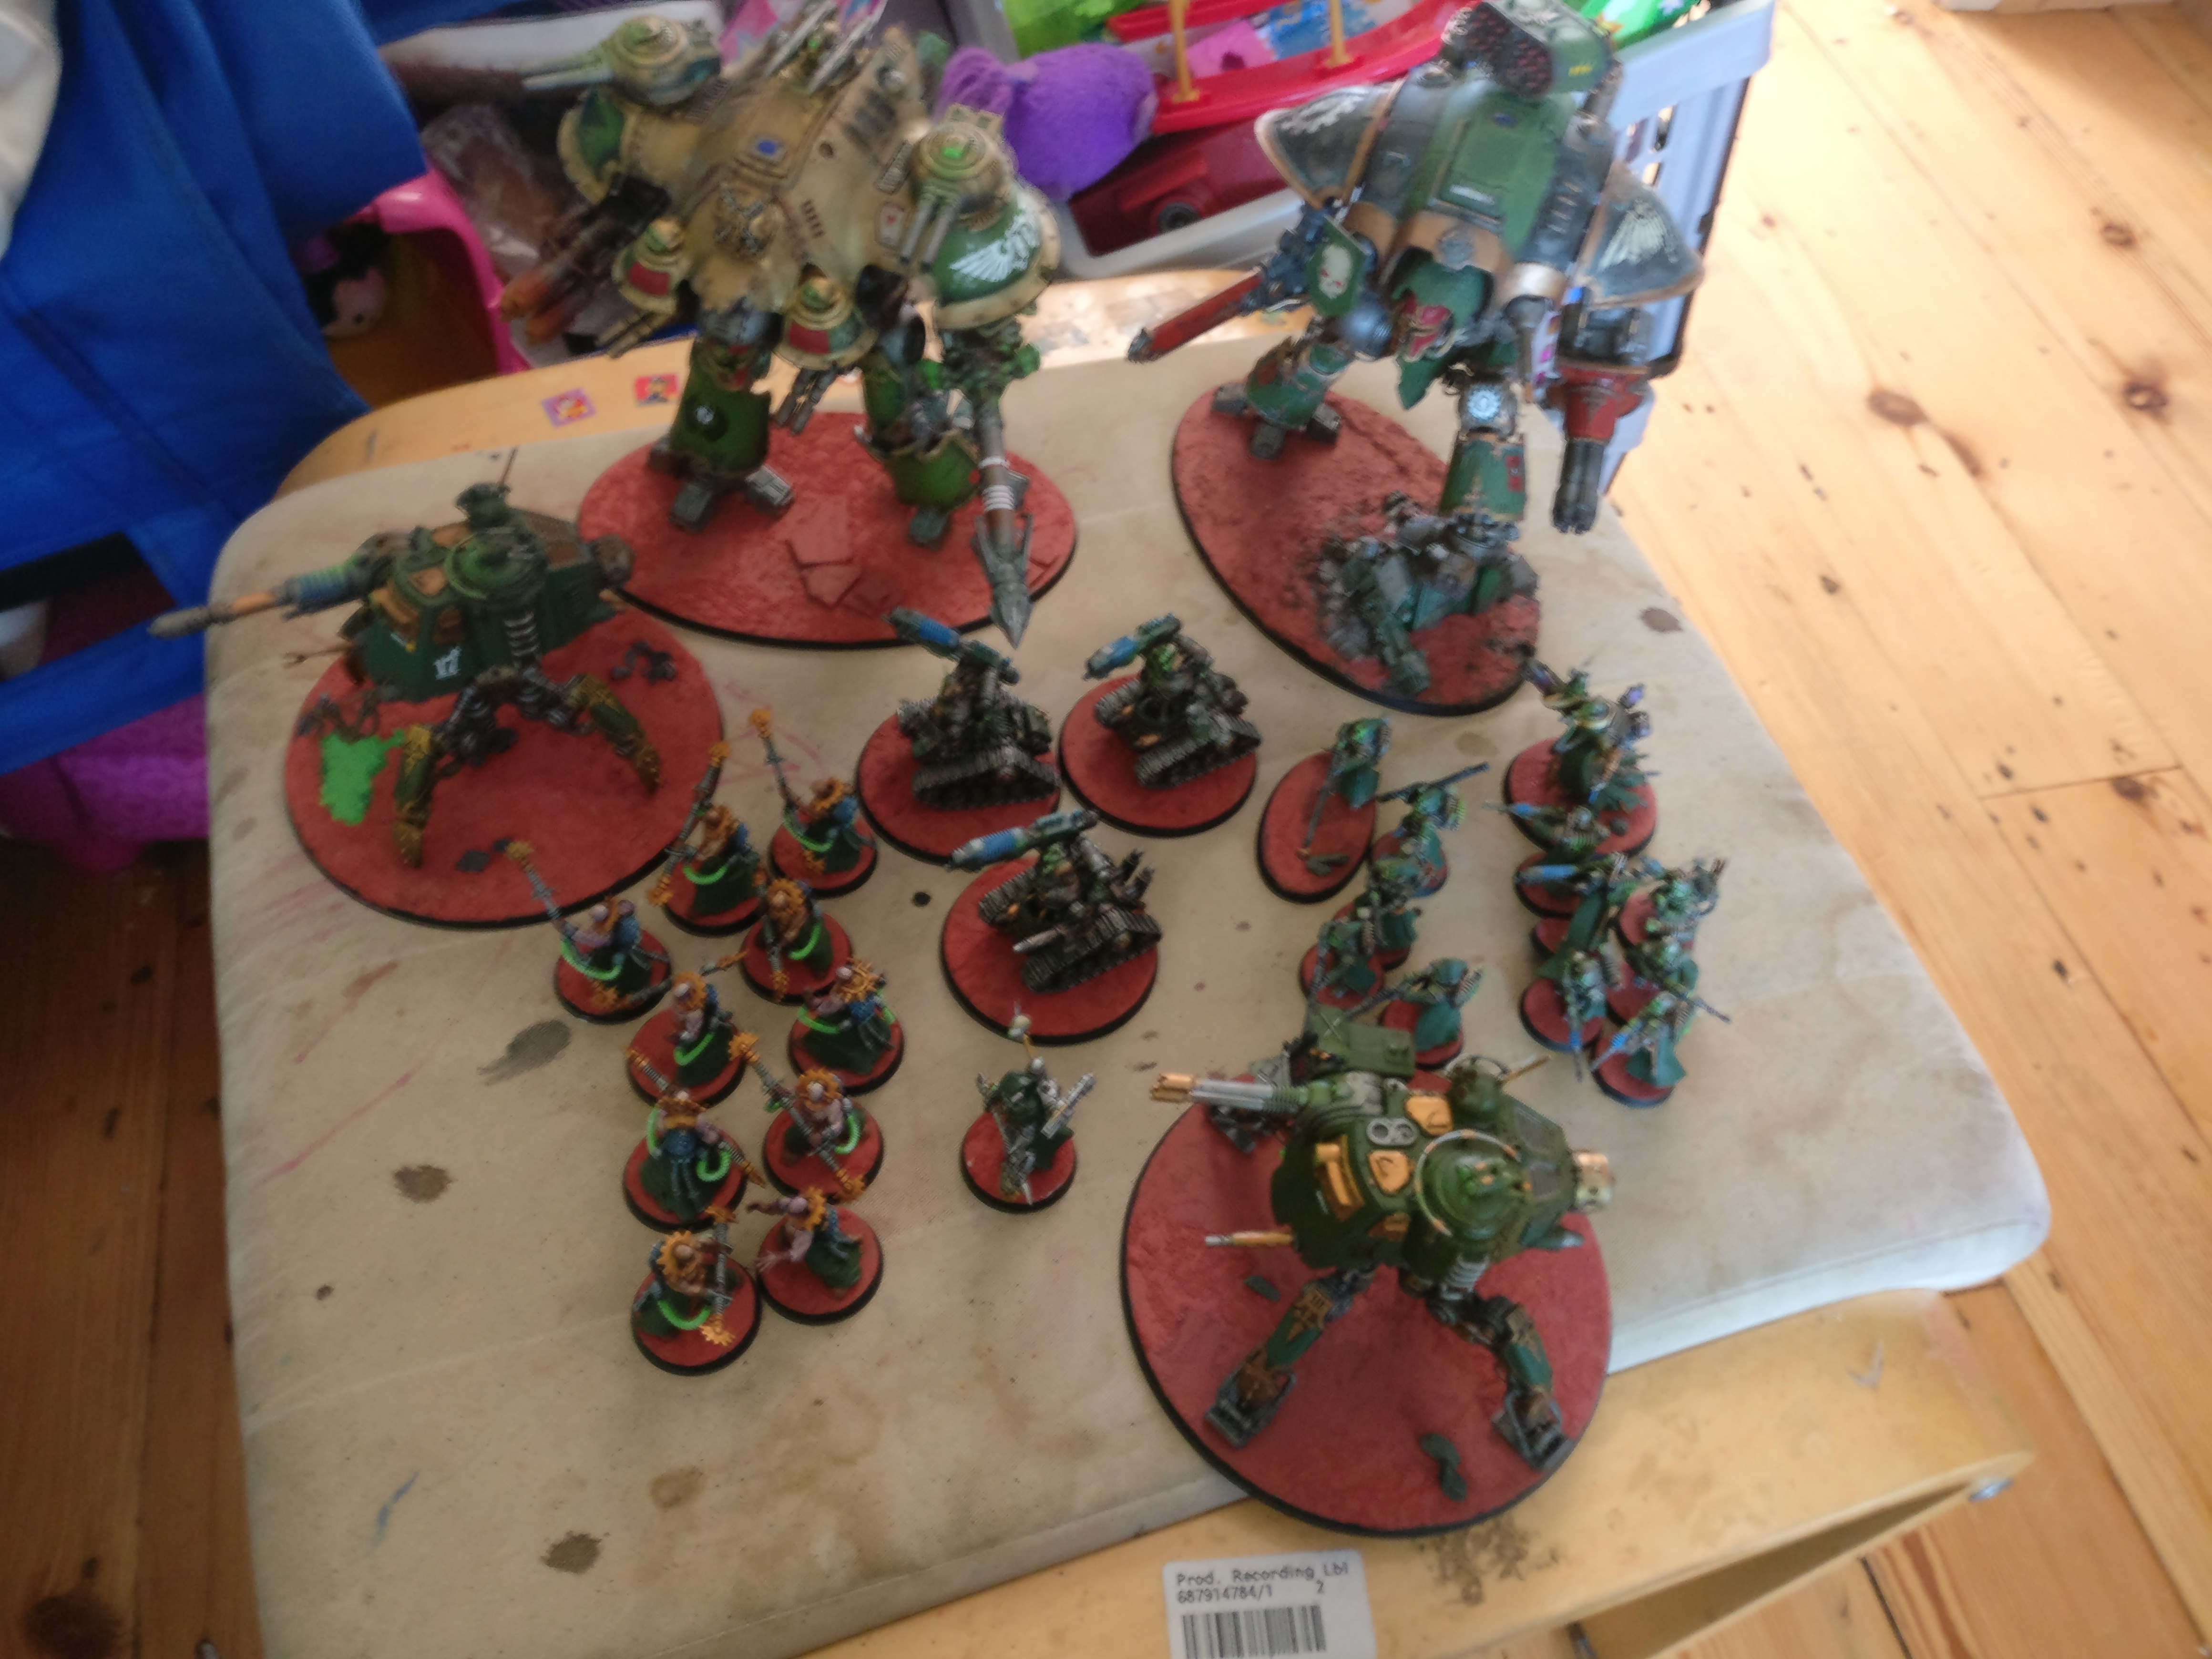 2000 points of AdMech and Knights for Warhammer 40k 8th edition